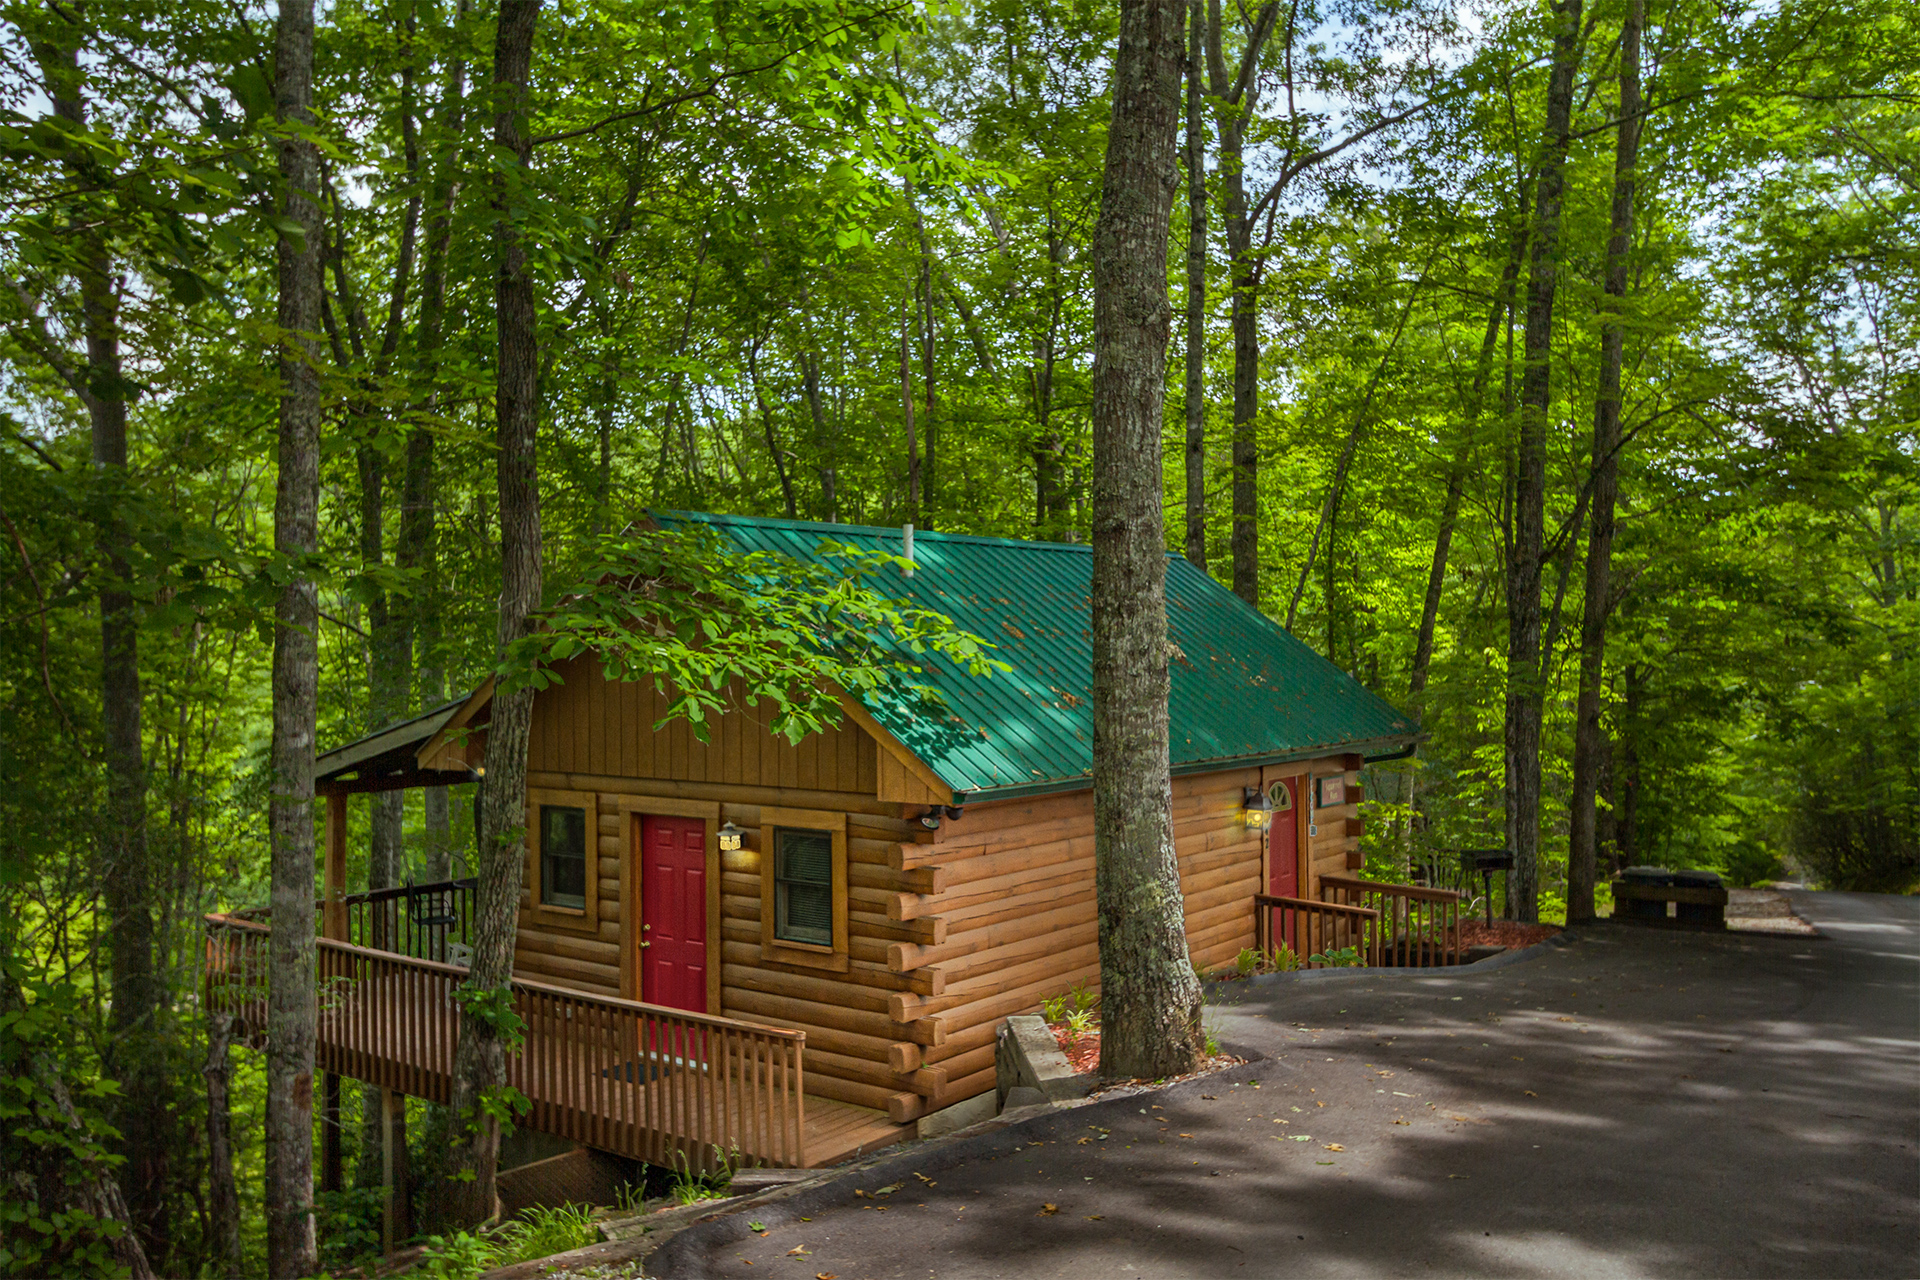 s poi cherokee panther resort cabin nc cabins builder creek itinerary rentals